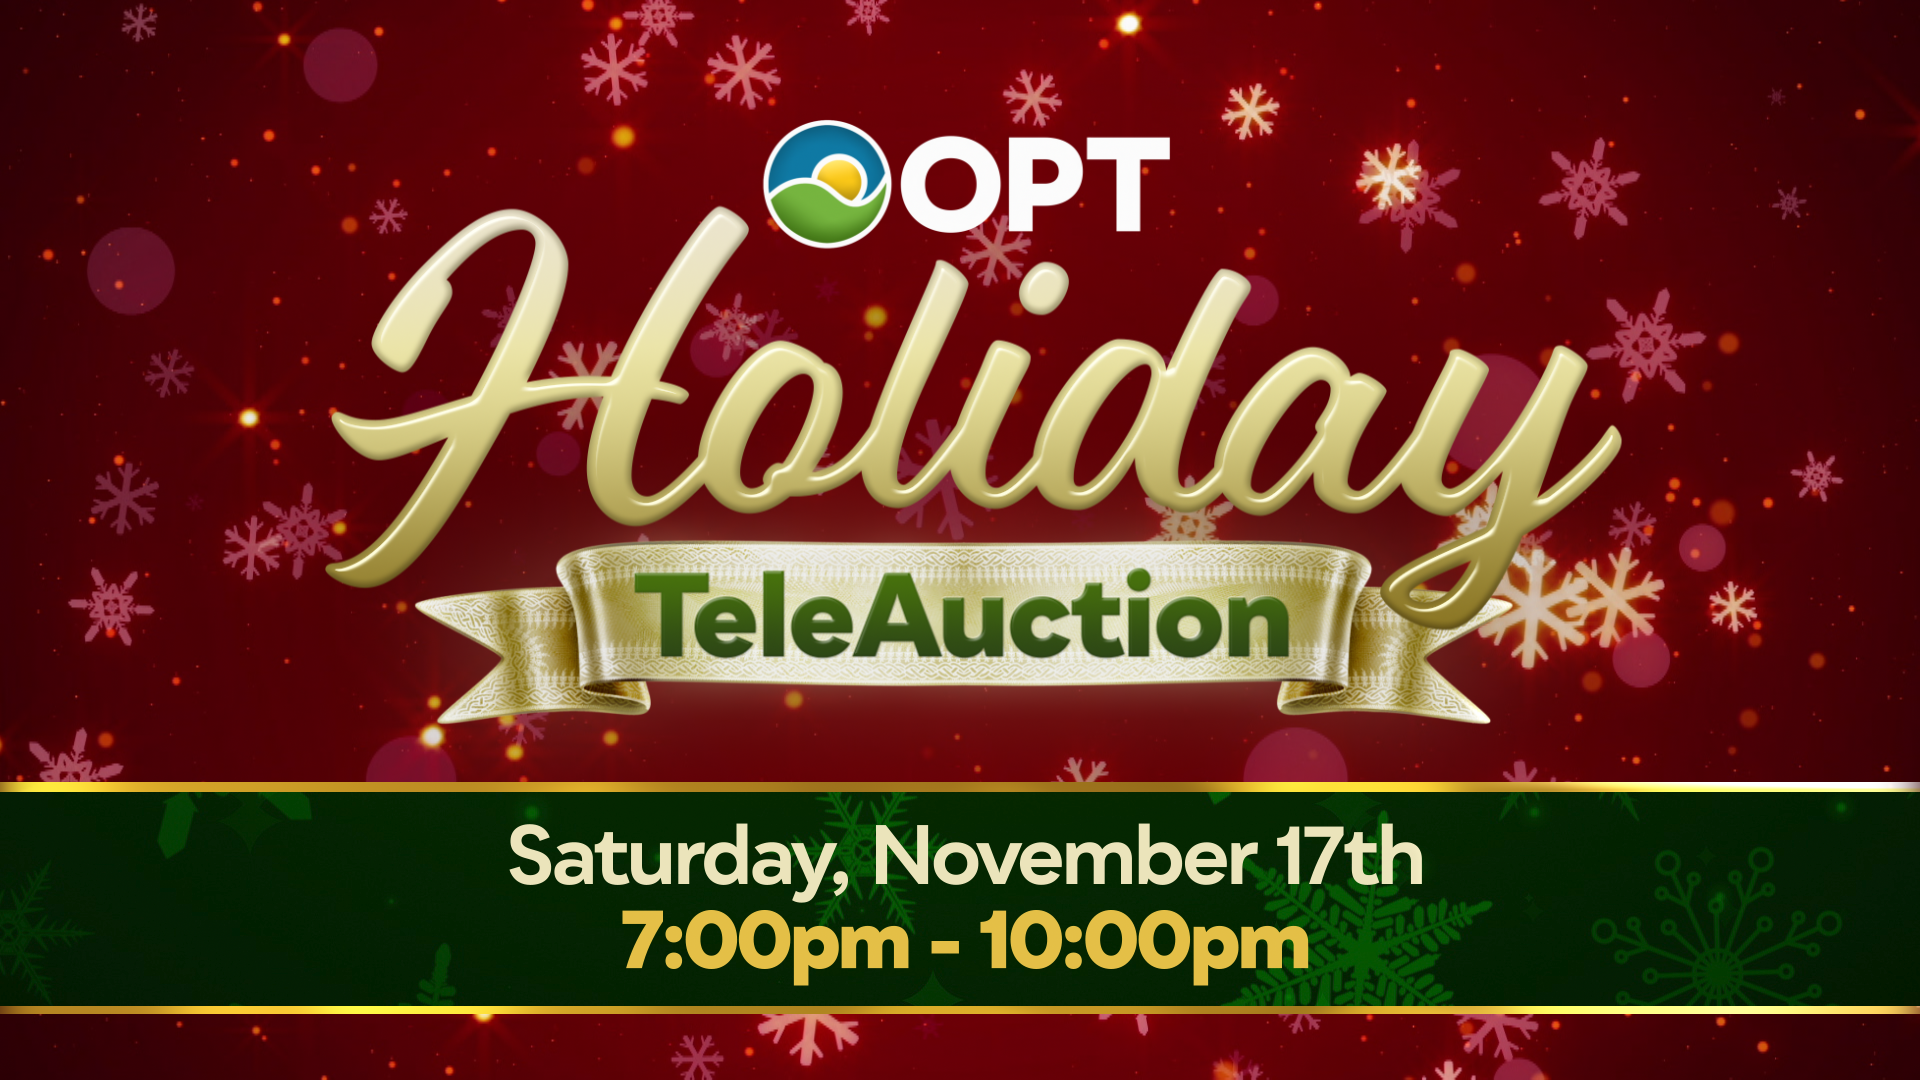 Holiday TeleAuction Sat. Nov. 17th 7-10pm